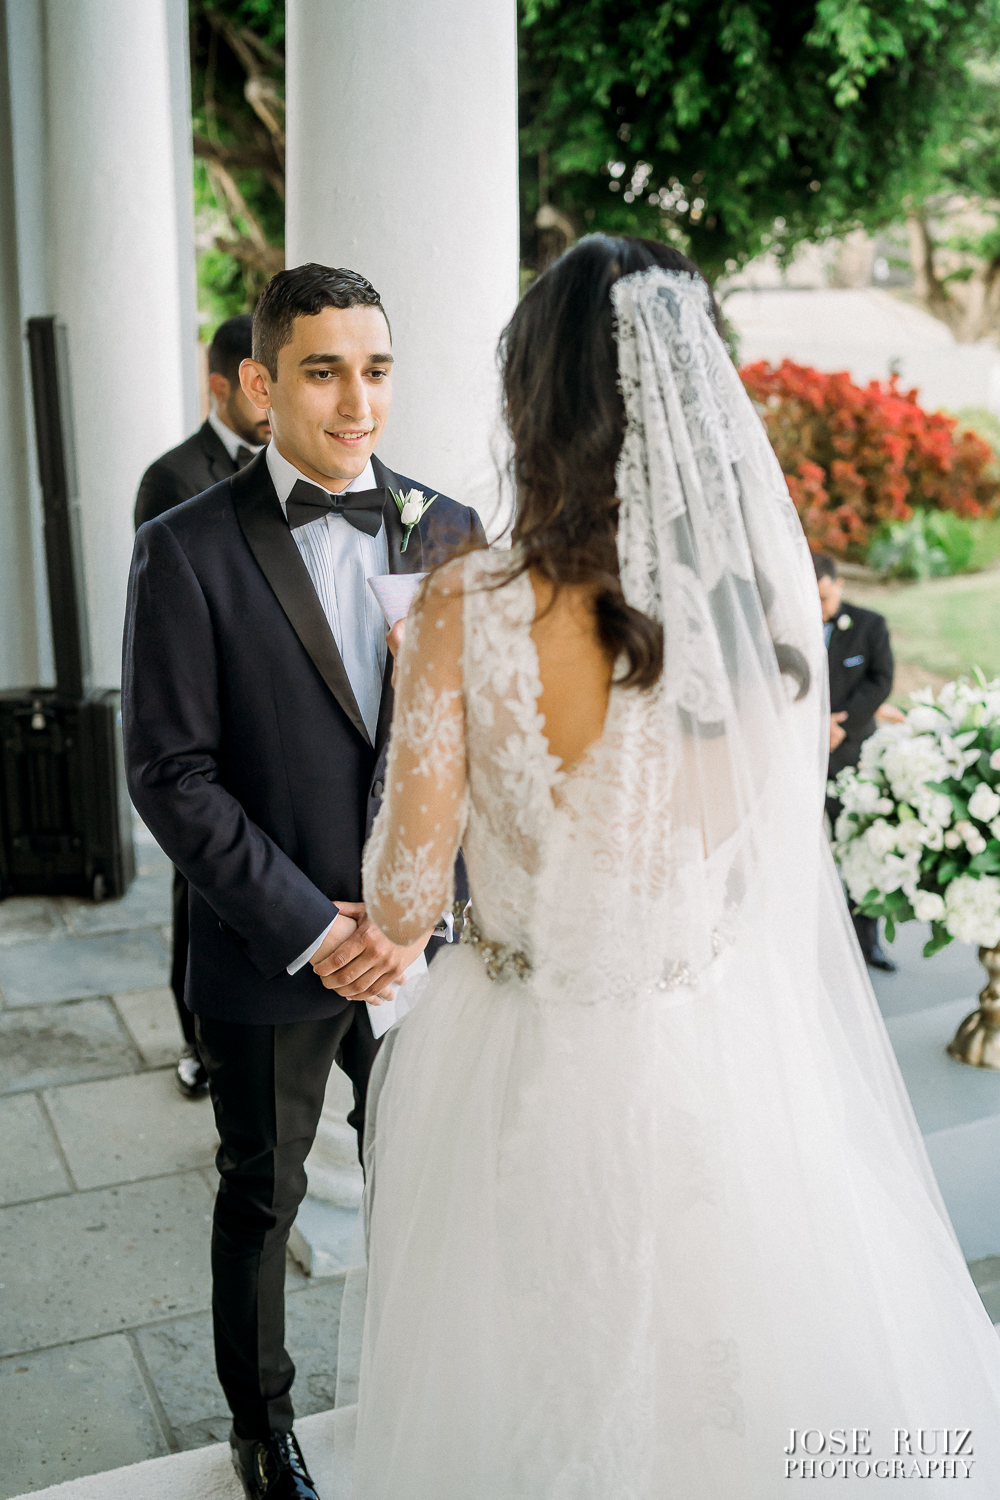 Jose Ruiz Photography- Veronica & Ivan-0147.jpg